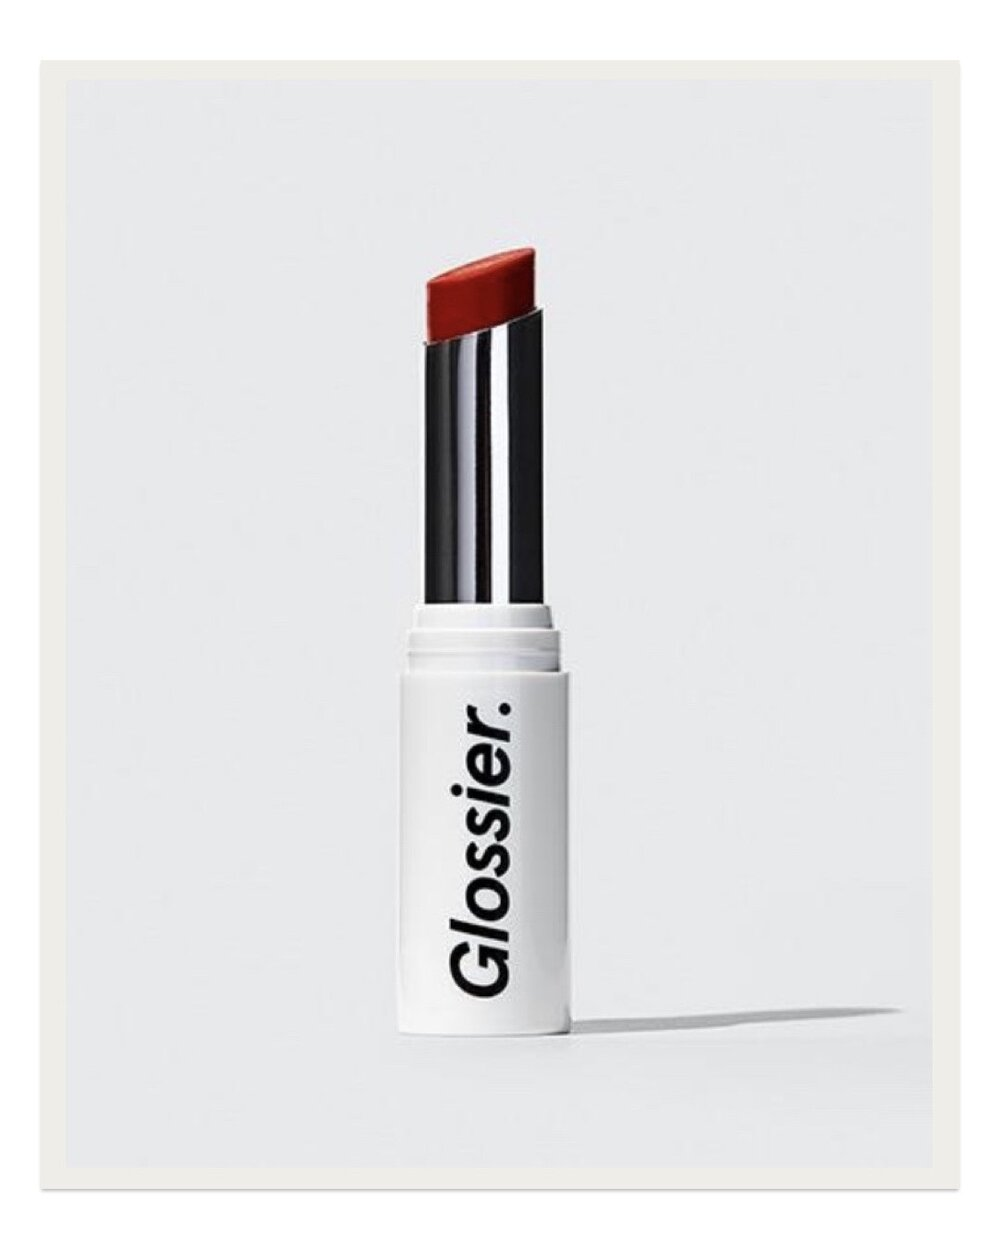 There are so many lovely Glossier products, but this is the first one I used that got me hooked and that I've purchased over and over. This Generation G Sheer Matte Lipstick is so lightweight and buildable and will give you an instant effortless look that livens up your face. I read somewhere when it first came out that the inspiration for this formula was to recreate the effect of your lips getting stained from eating a popsicle, and I still it still feels so youthful and fun to apply each day because of that idea.